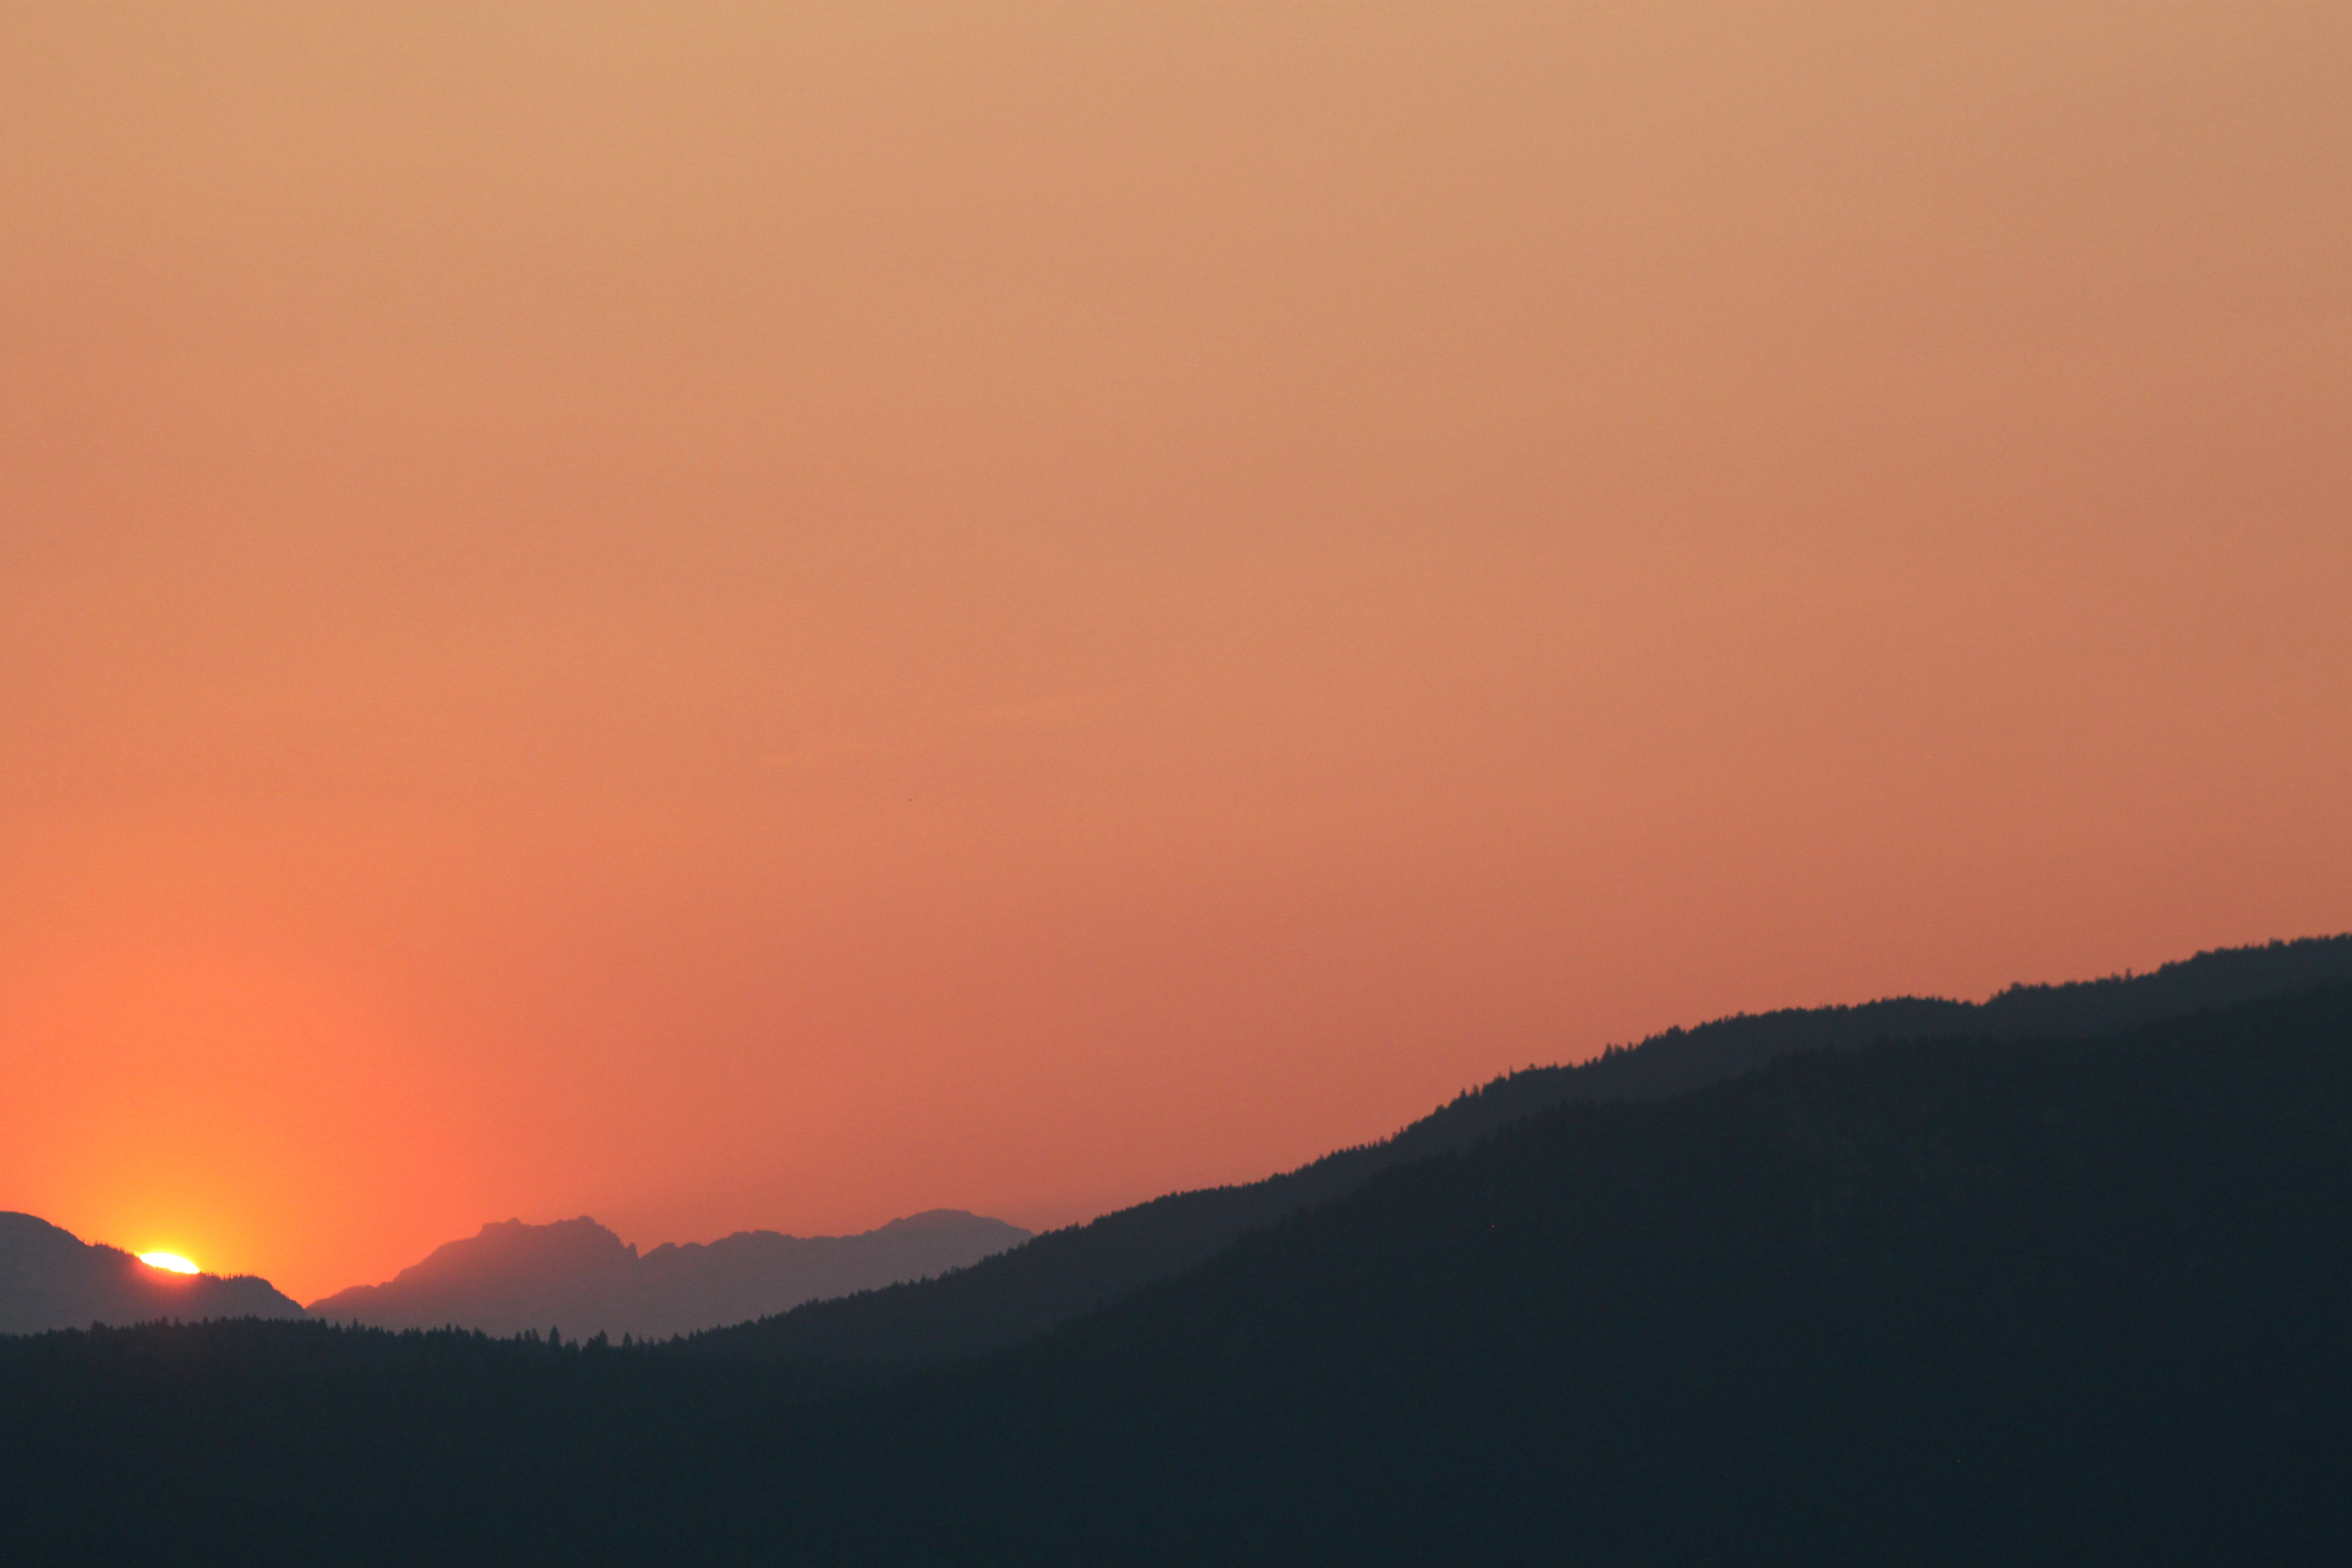 silhouette photo of mountain at sunset